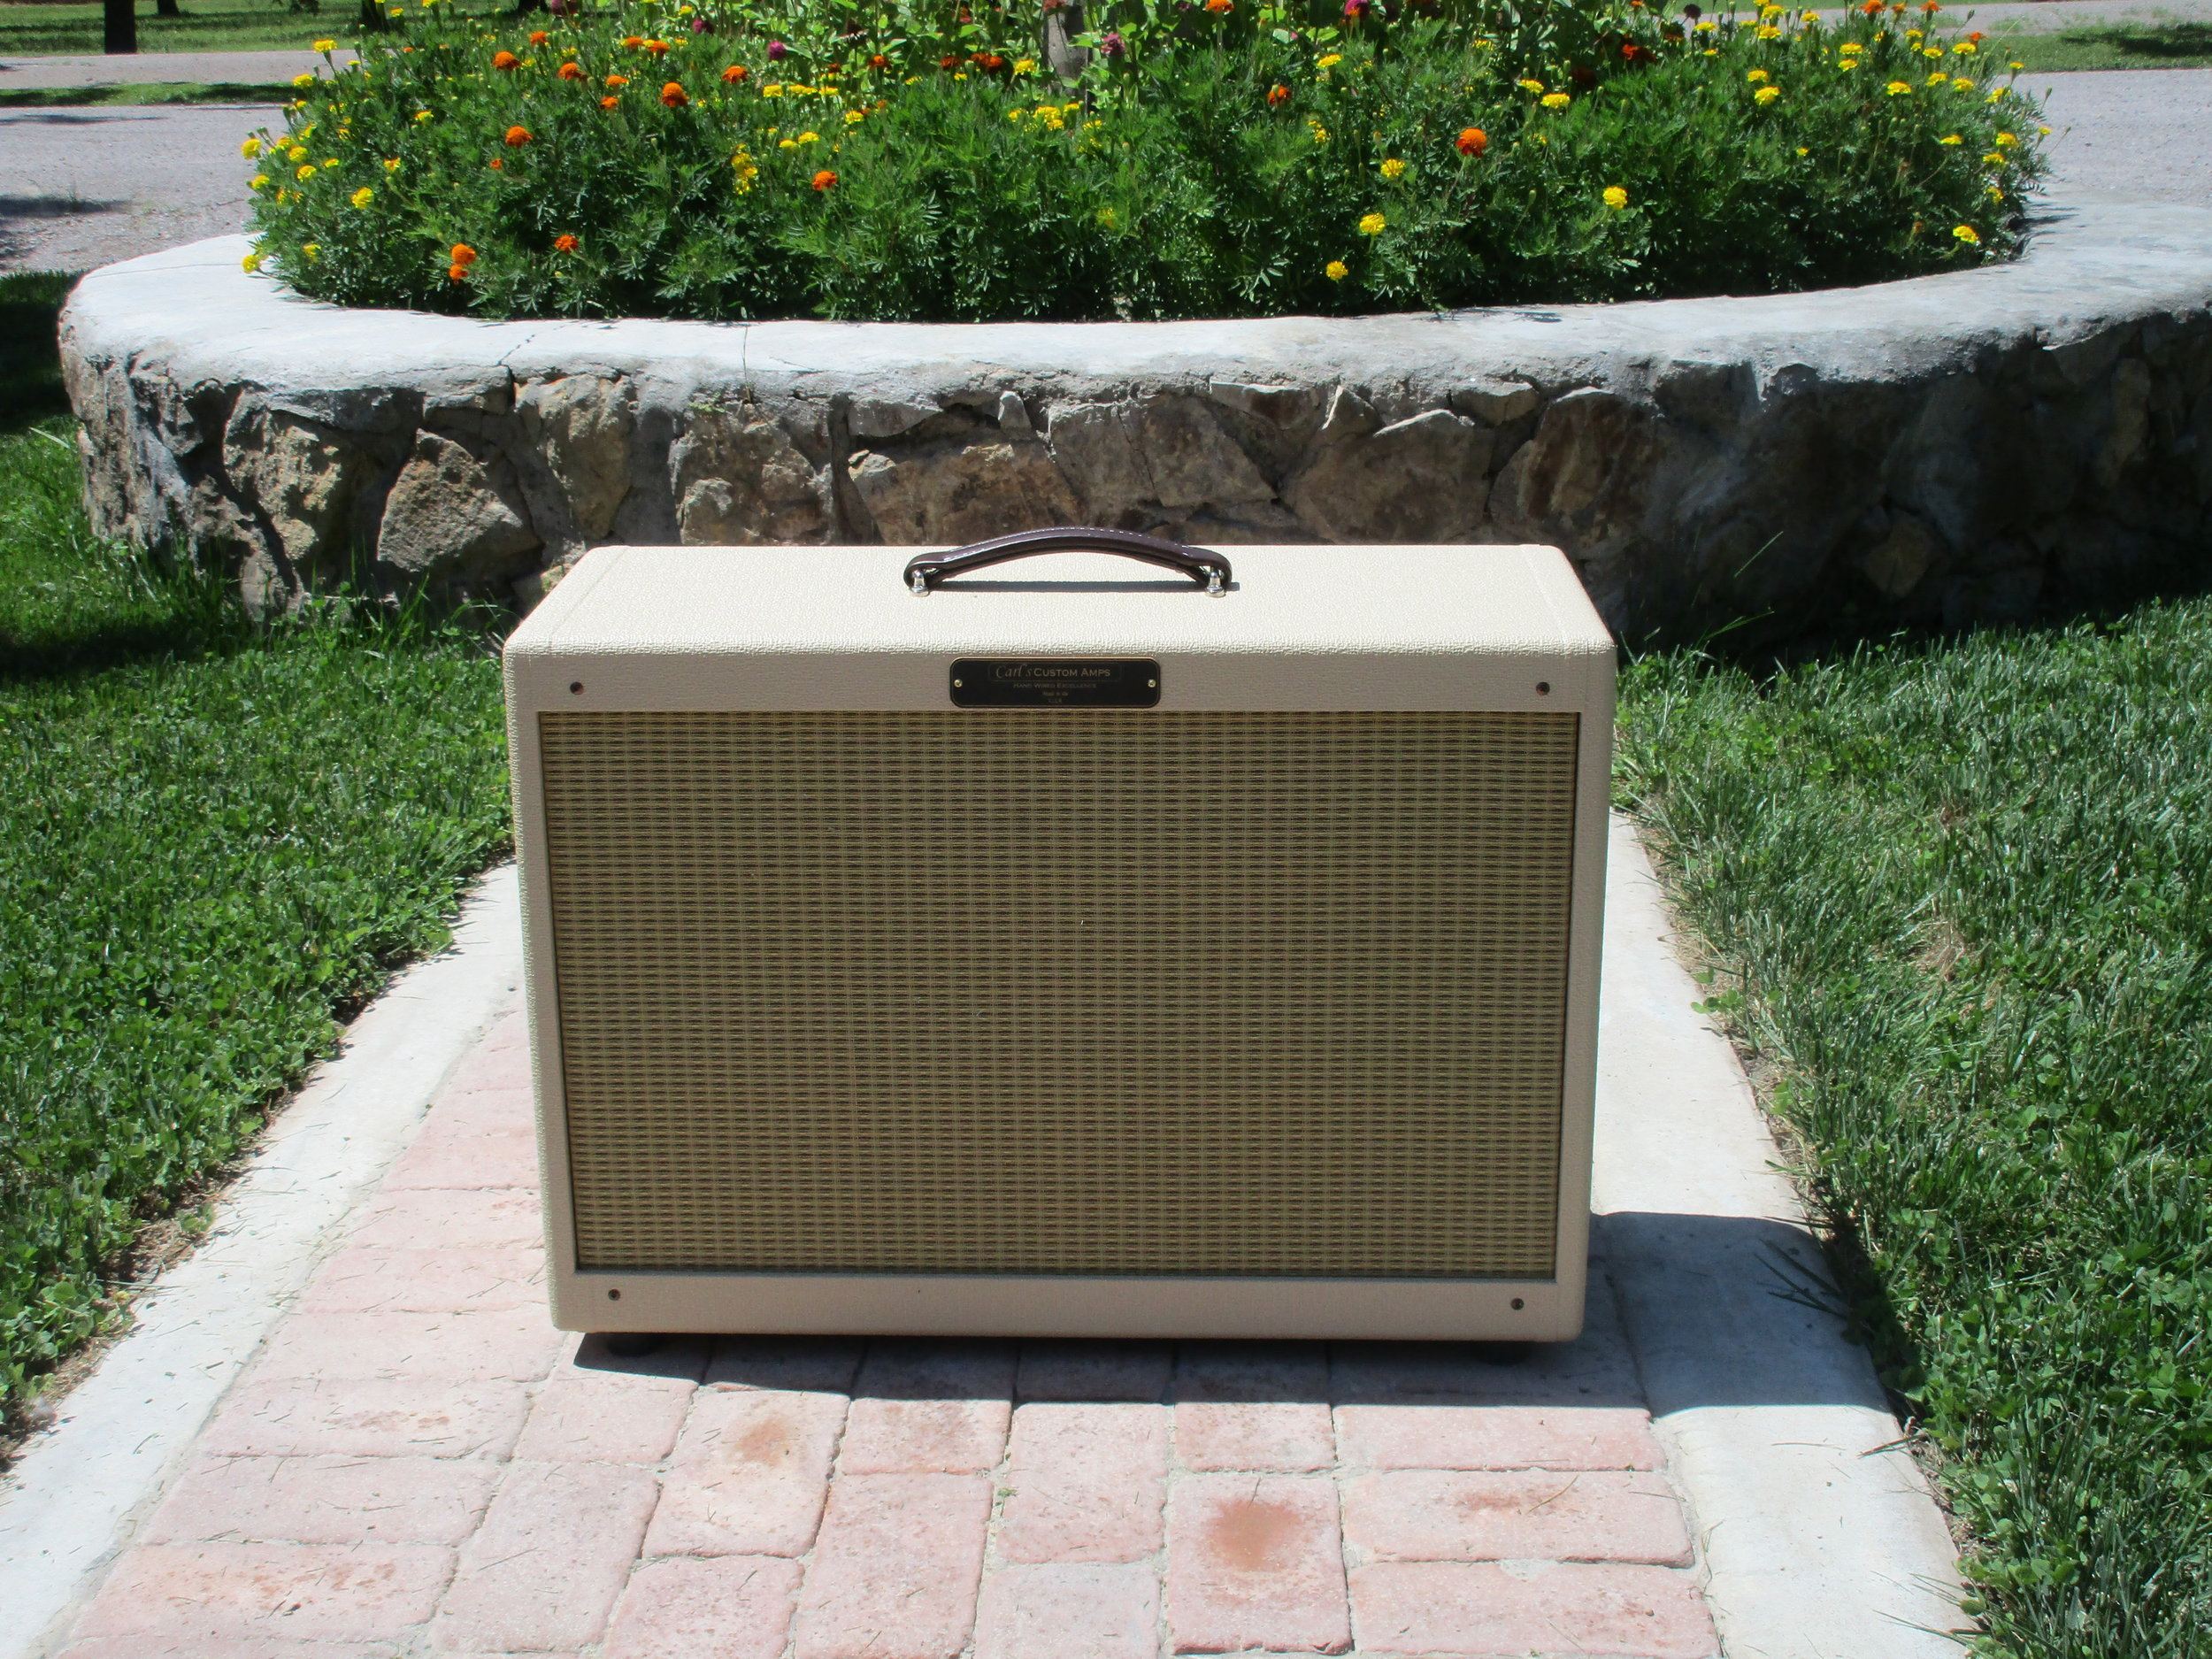 """2X12 Pine Extension Cab. It's loaded with Weber 12F150s for great 60's American tones. The new owner plays surf with vintage Blonde Fender Showman. He wrote:"""" 2 by 12 cab sounds fantastic. It's a wonderful match for my amp. Crystal clear tone. Perfect for surf tunes. Thanks Carl""""--John"""